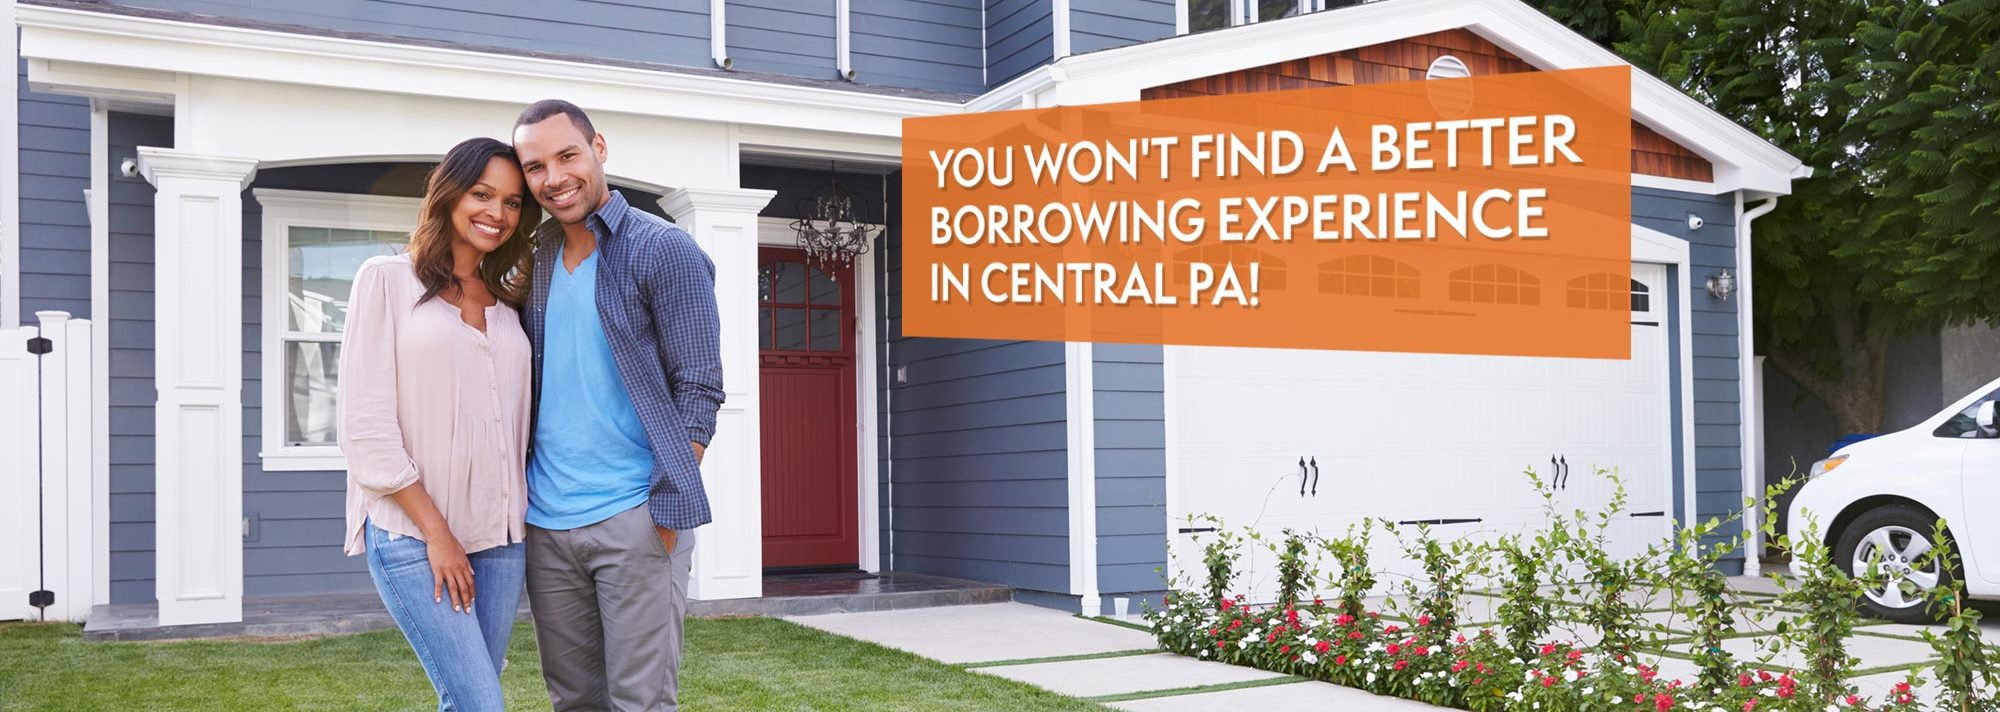 You won't find a better borrowing experience in Central PA!